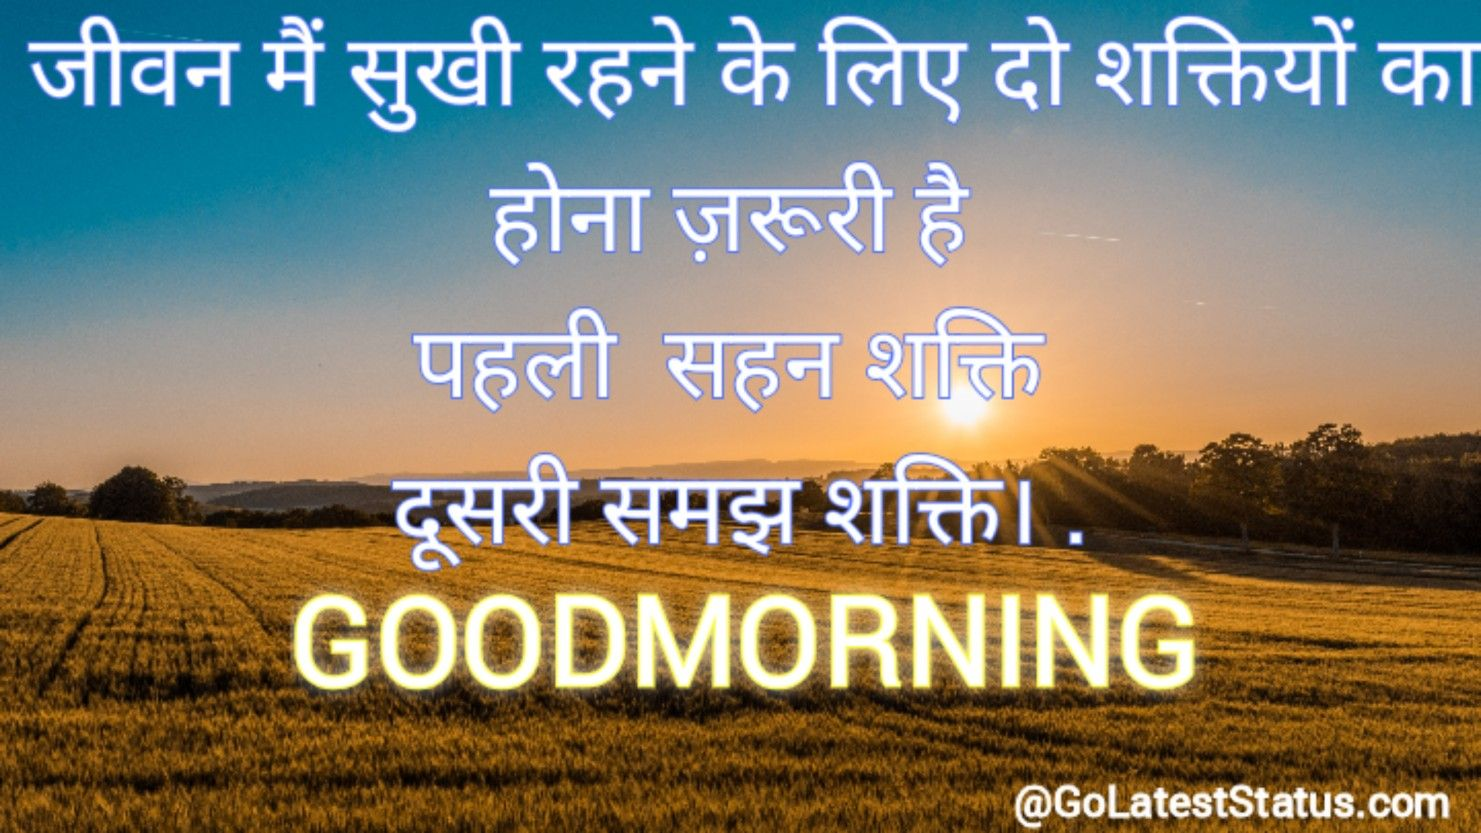 GOODMORNING images for WhatsApp in hindi in 2020 | Morning ...